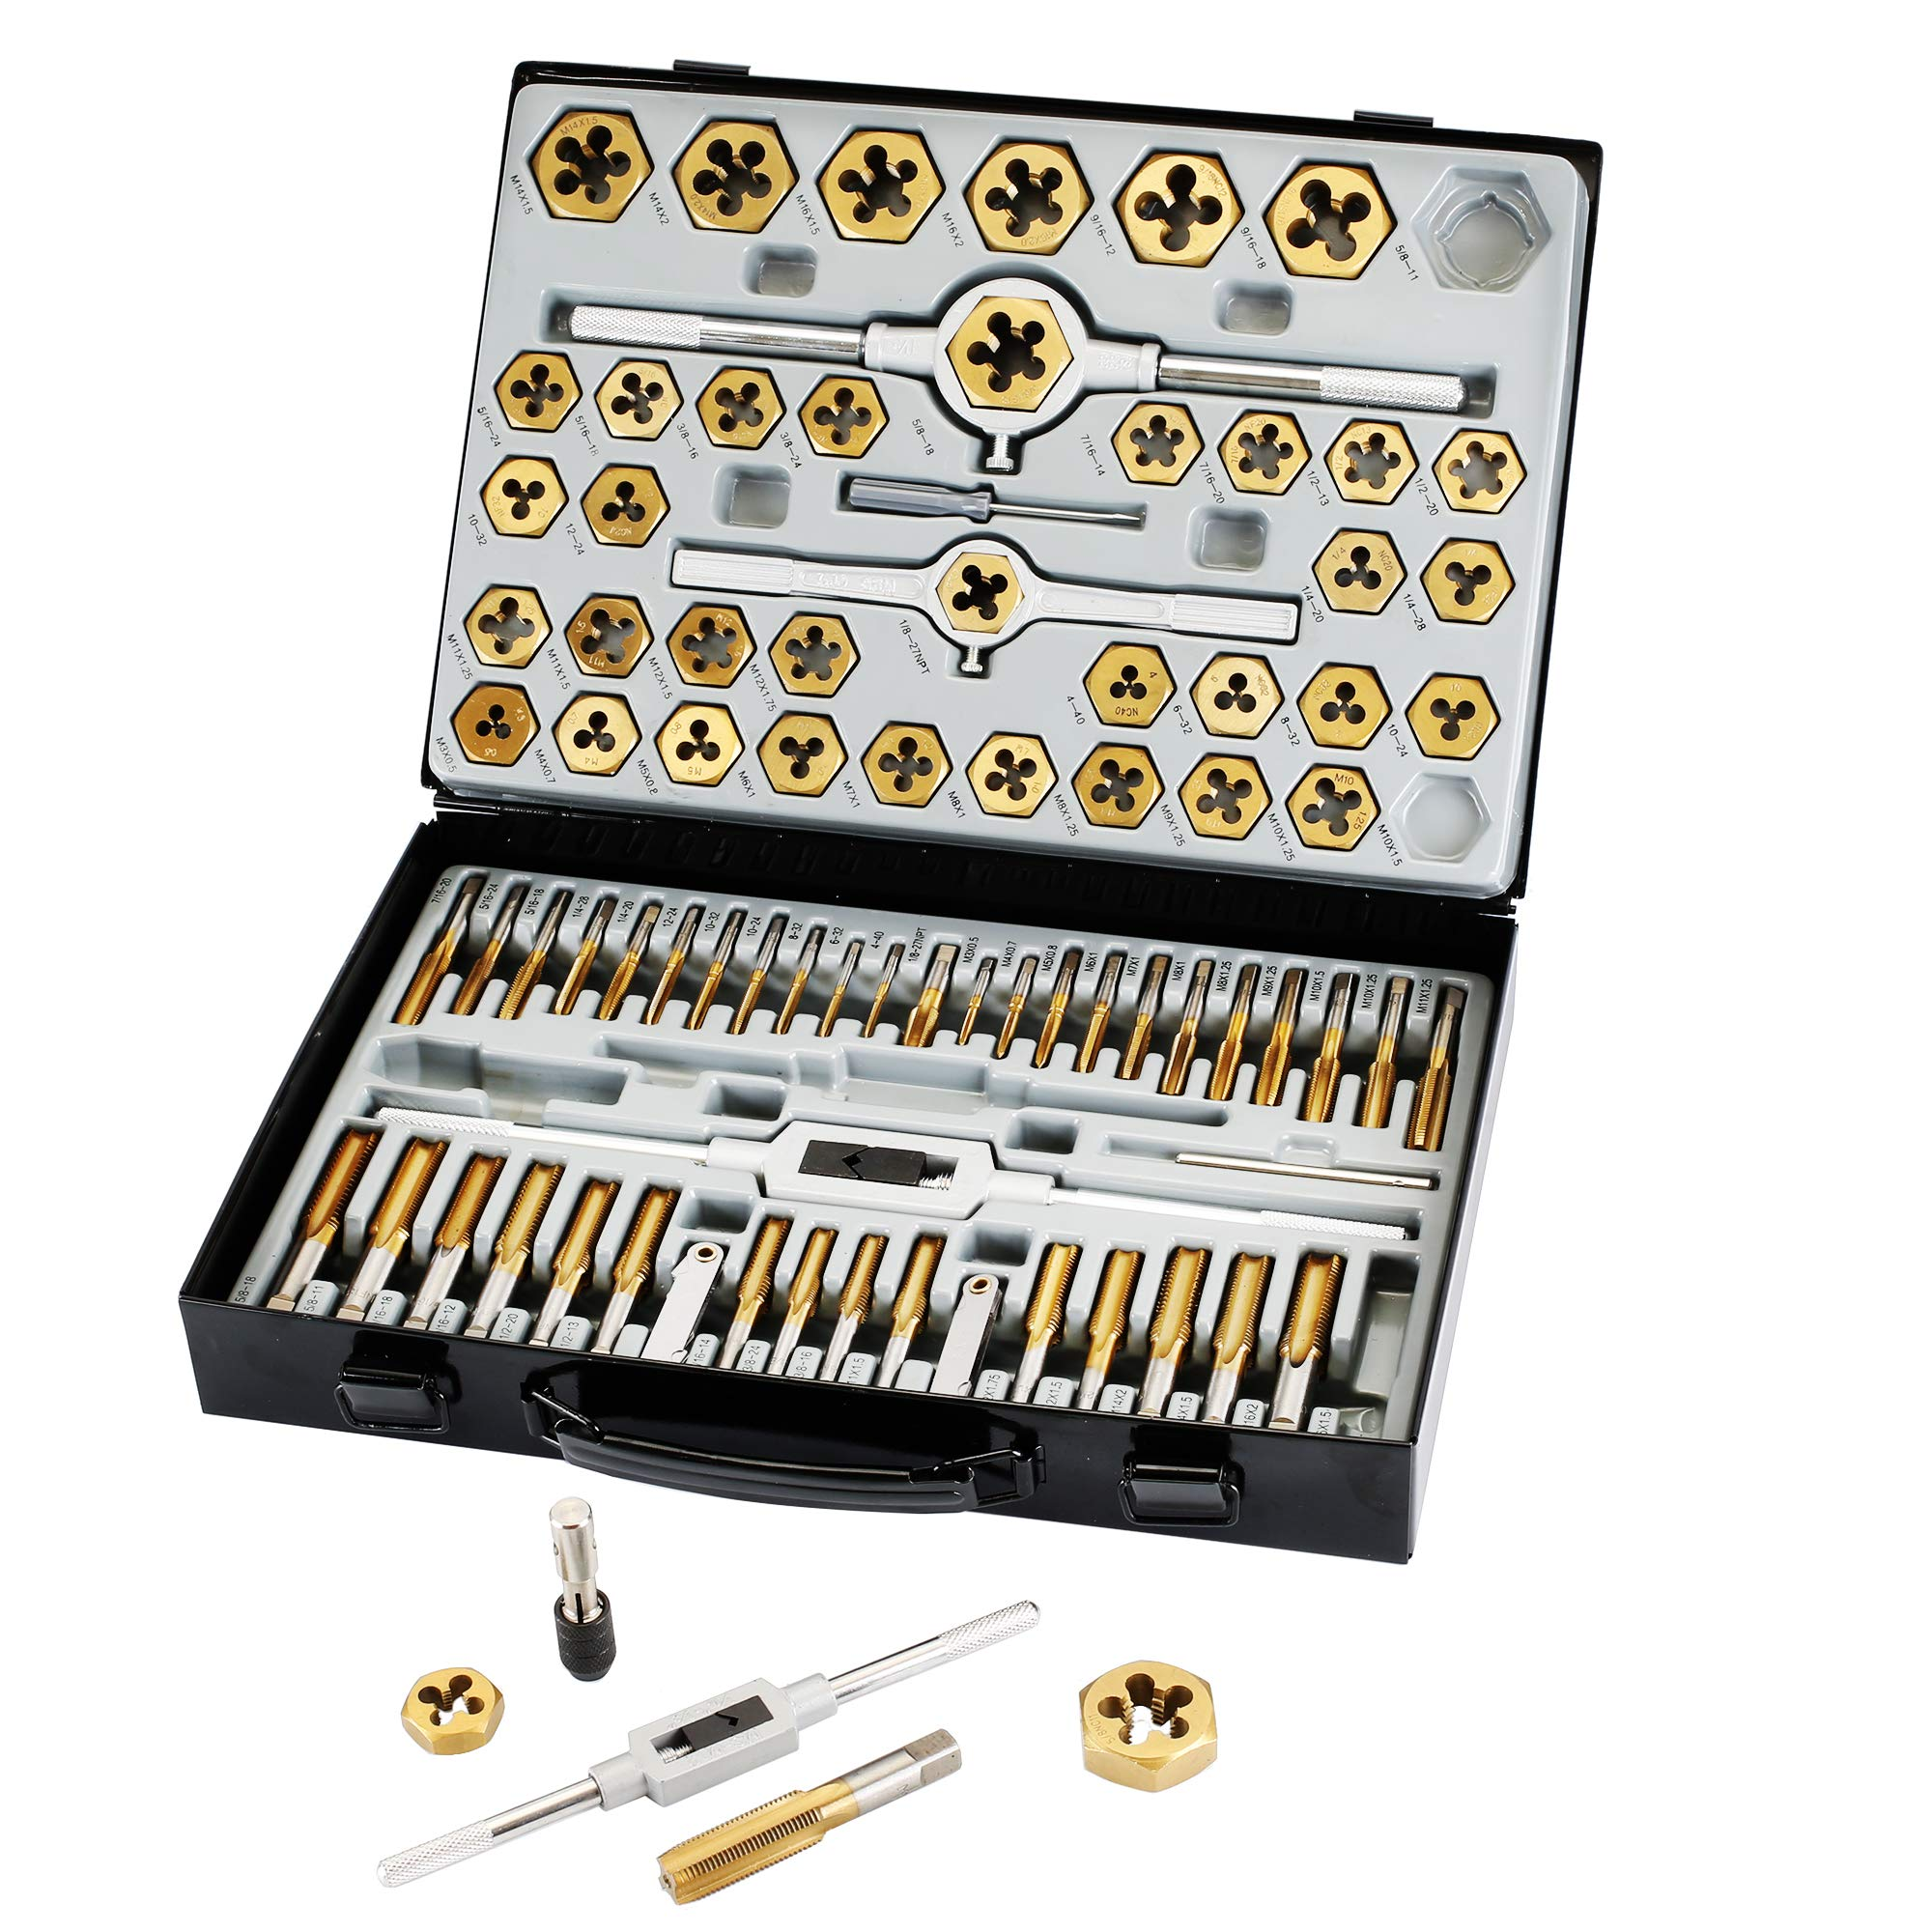 Muzerdo 86 Piece Tap and Die Set Bearing Steel Sae and Metric Tools with Metal Carrying Case